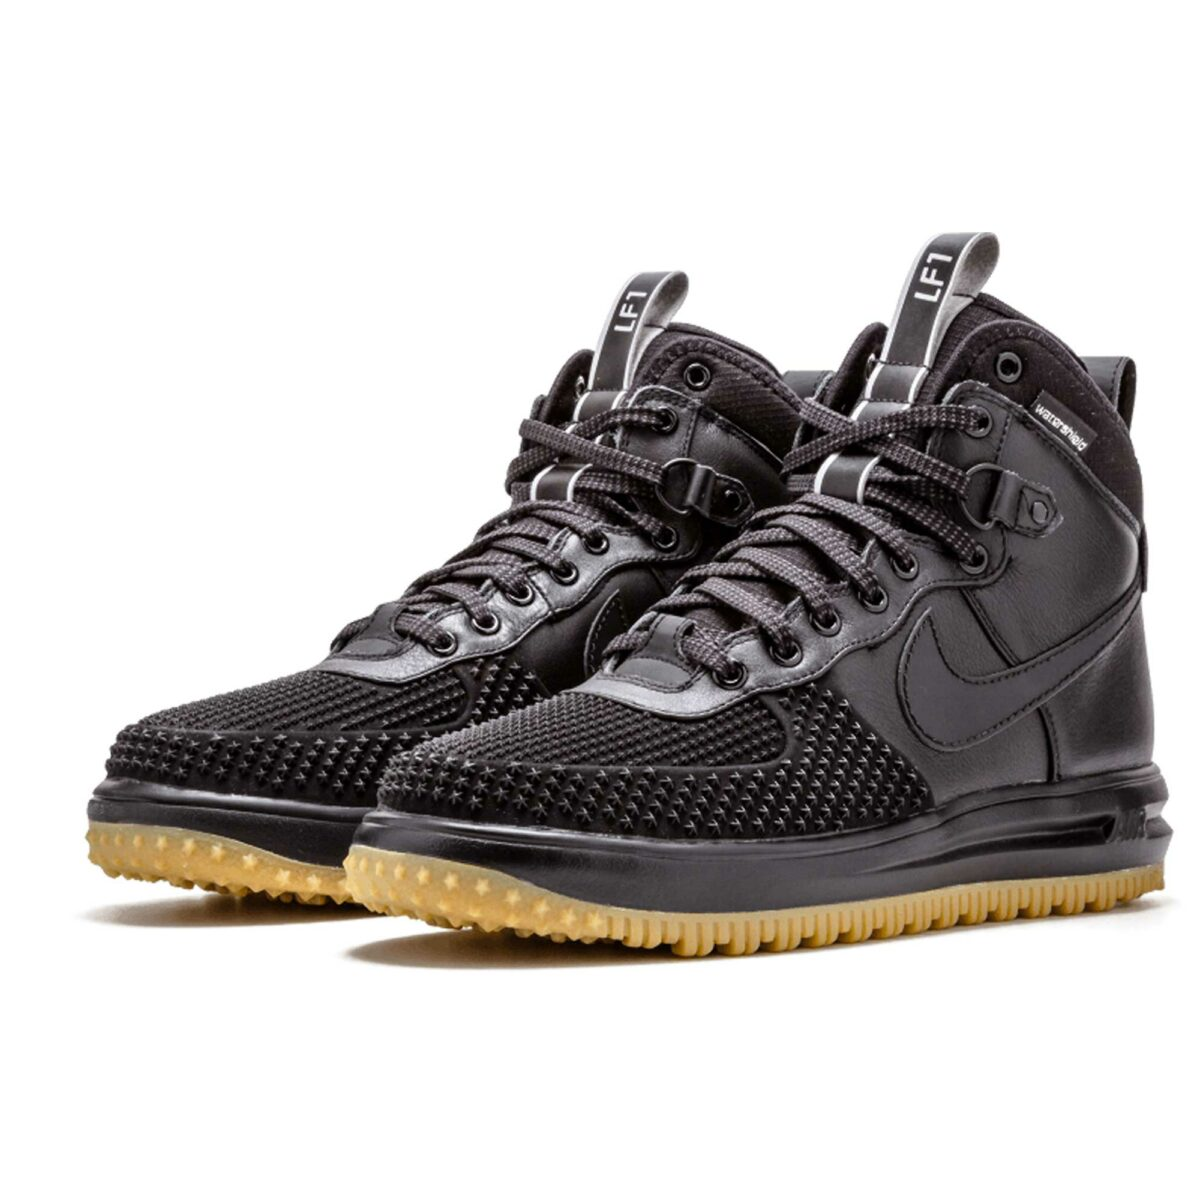 nike lunar force 1 duckboot black 805899_003 купить